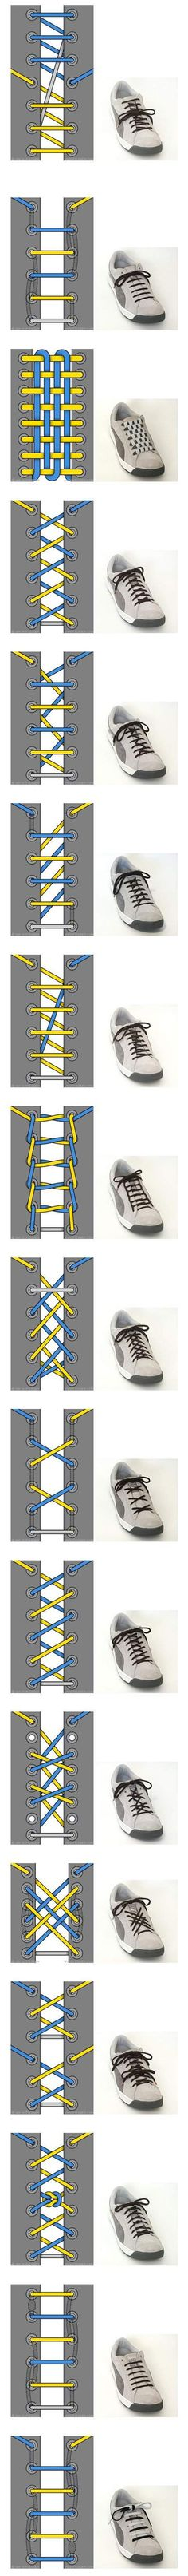 Cool Ways To Tie Your Shoe Laces ~ shoe lace patterns ~ Will have to remember this when the kids finally get shoes with laces. Your Shoes, Good To Know, Just In Case, Life Hacks, Creations, Geek Stuff, Good Things, Manly Things, Simple Things